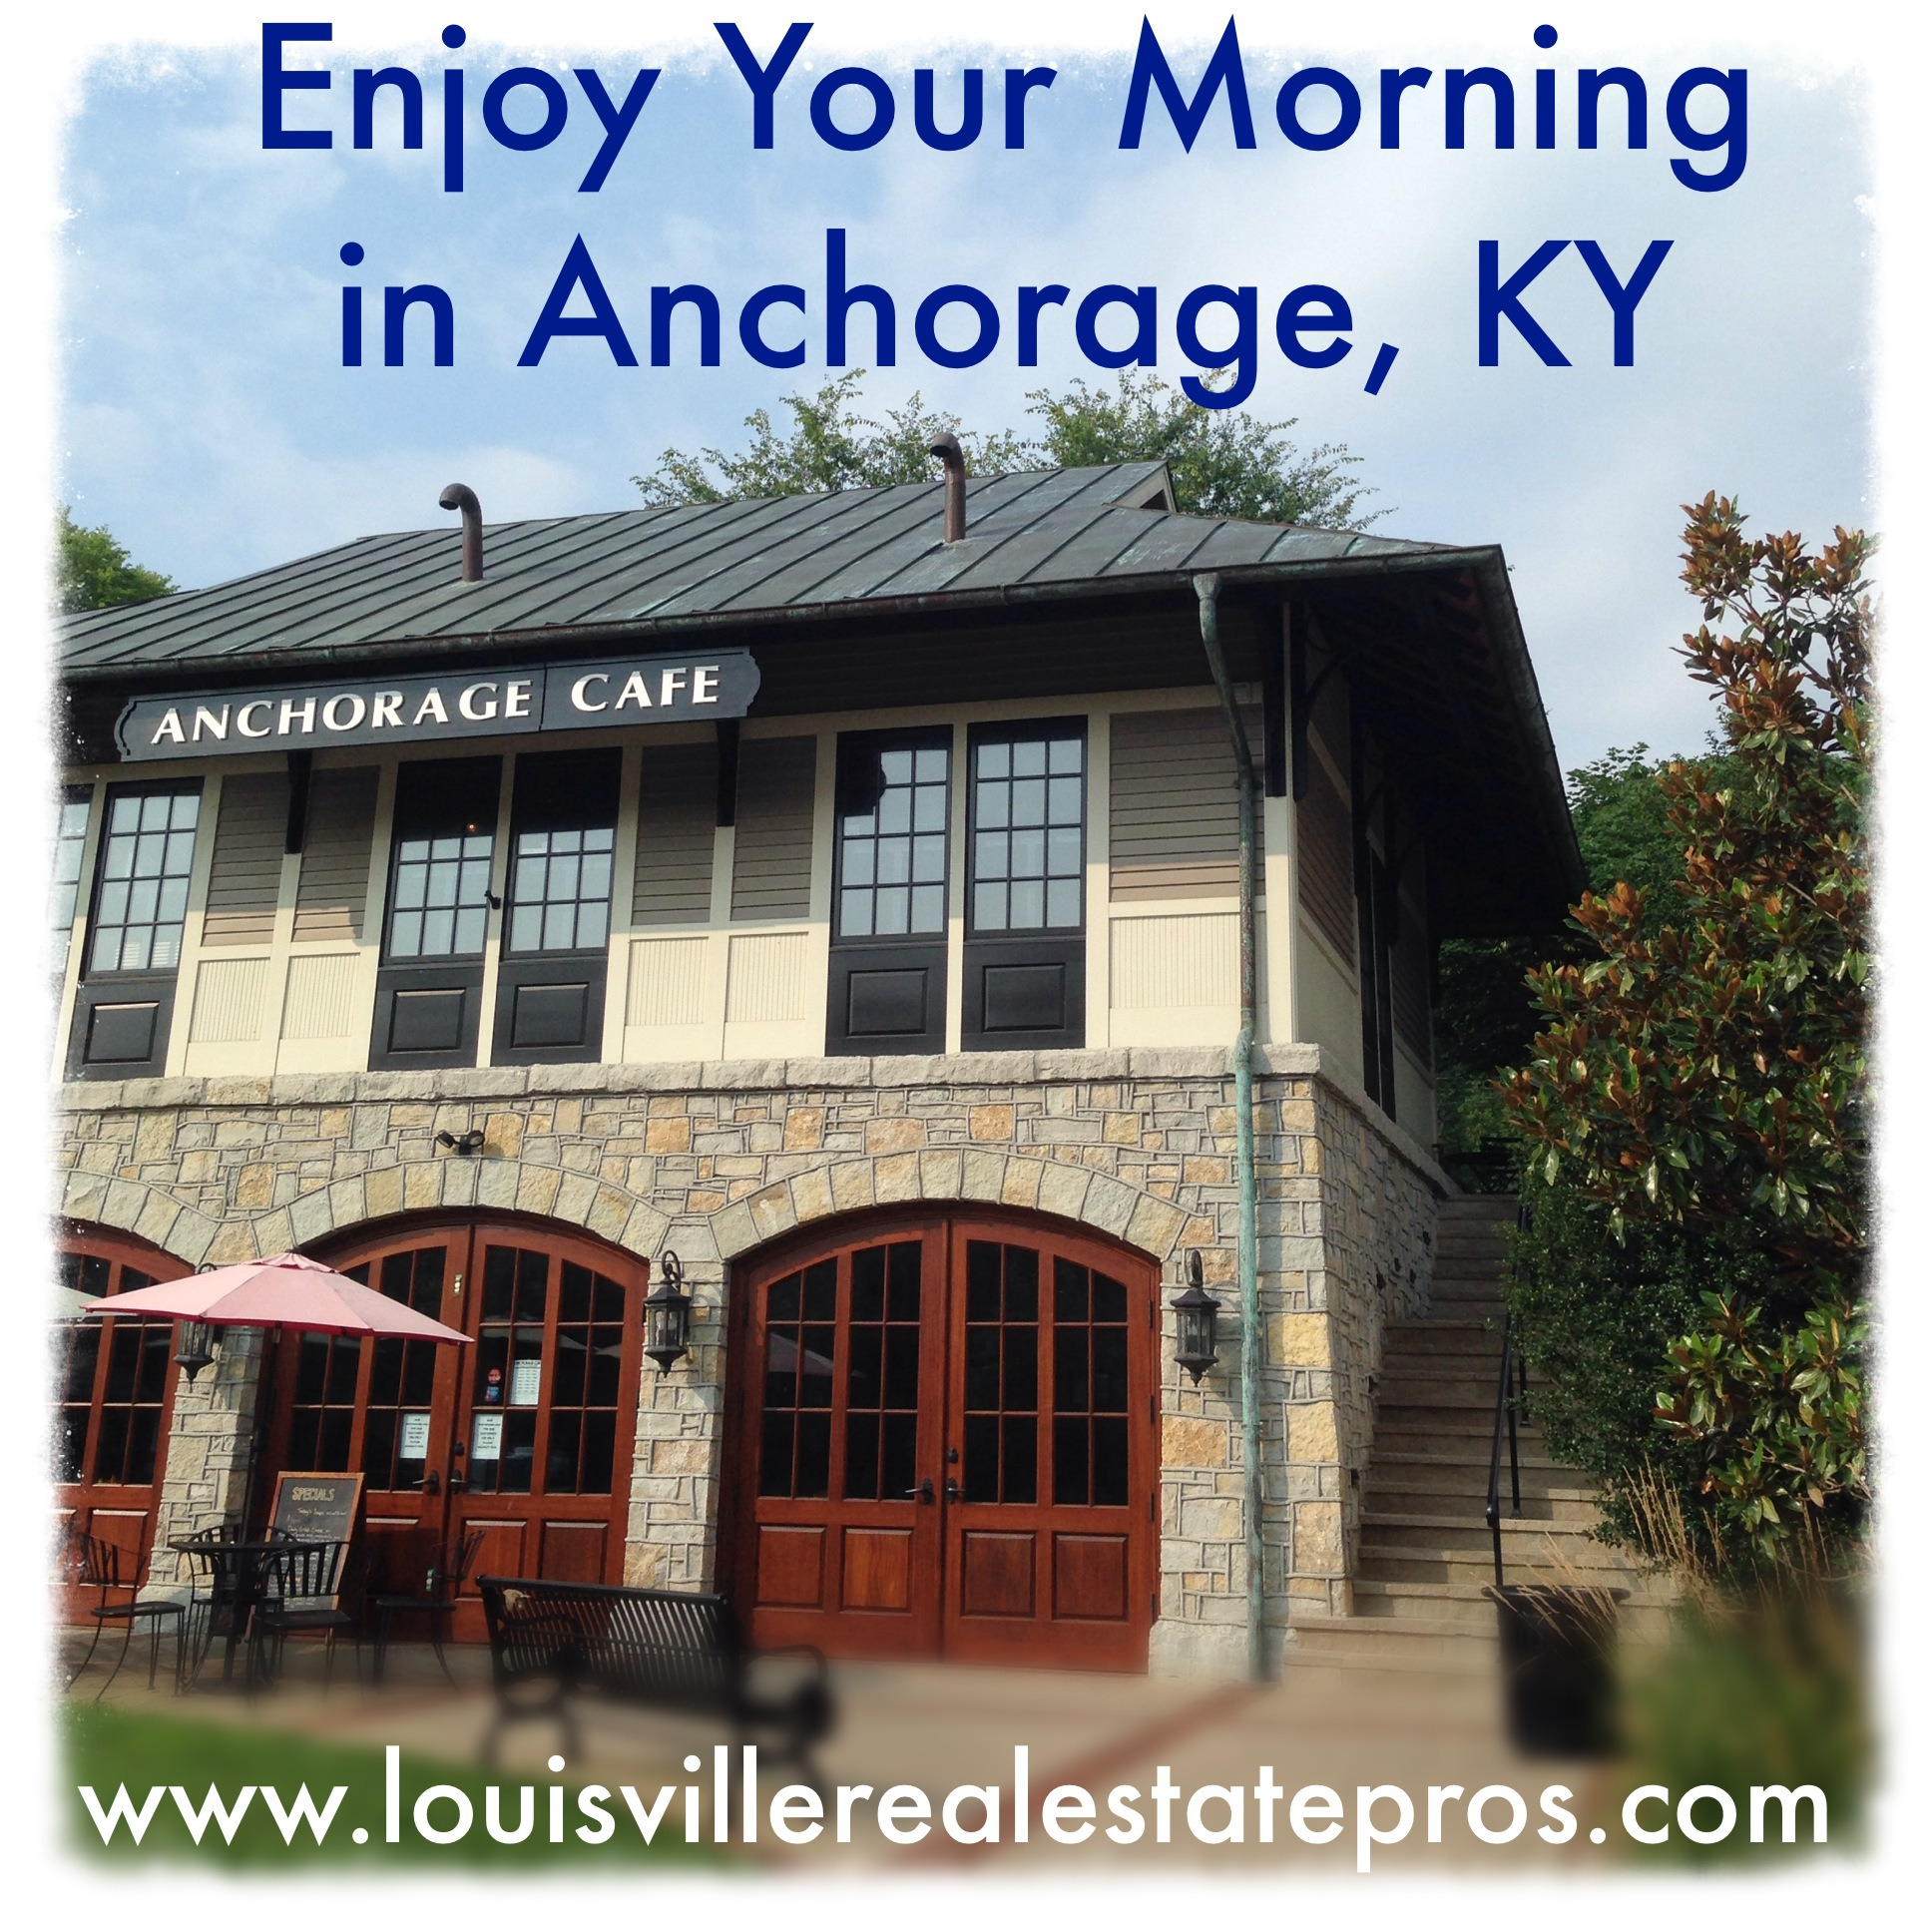 2 Simple Ways to Enjoy Your Morning in Anchorage, KY